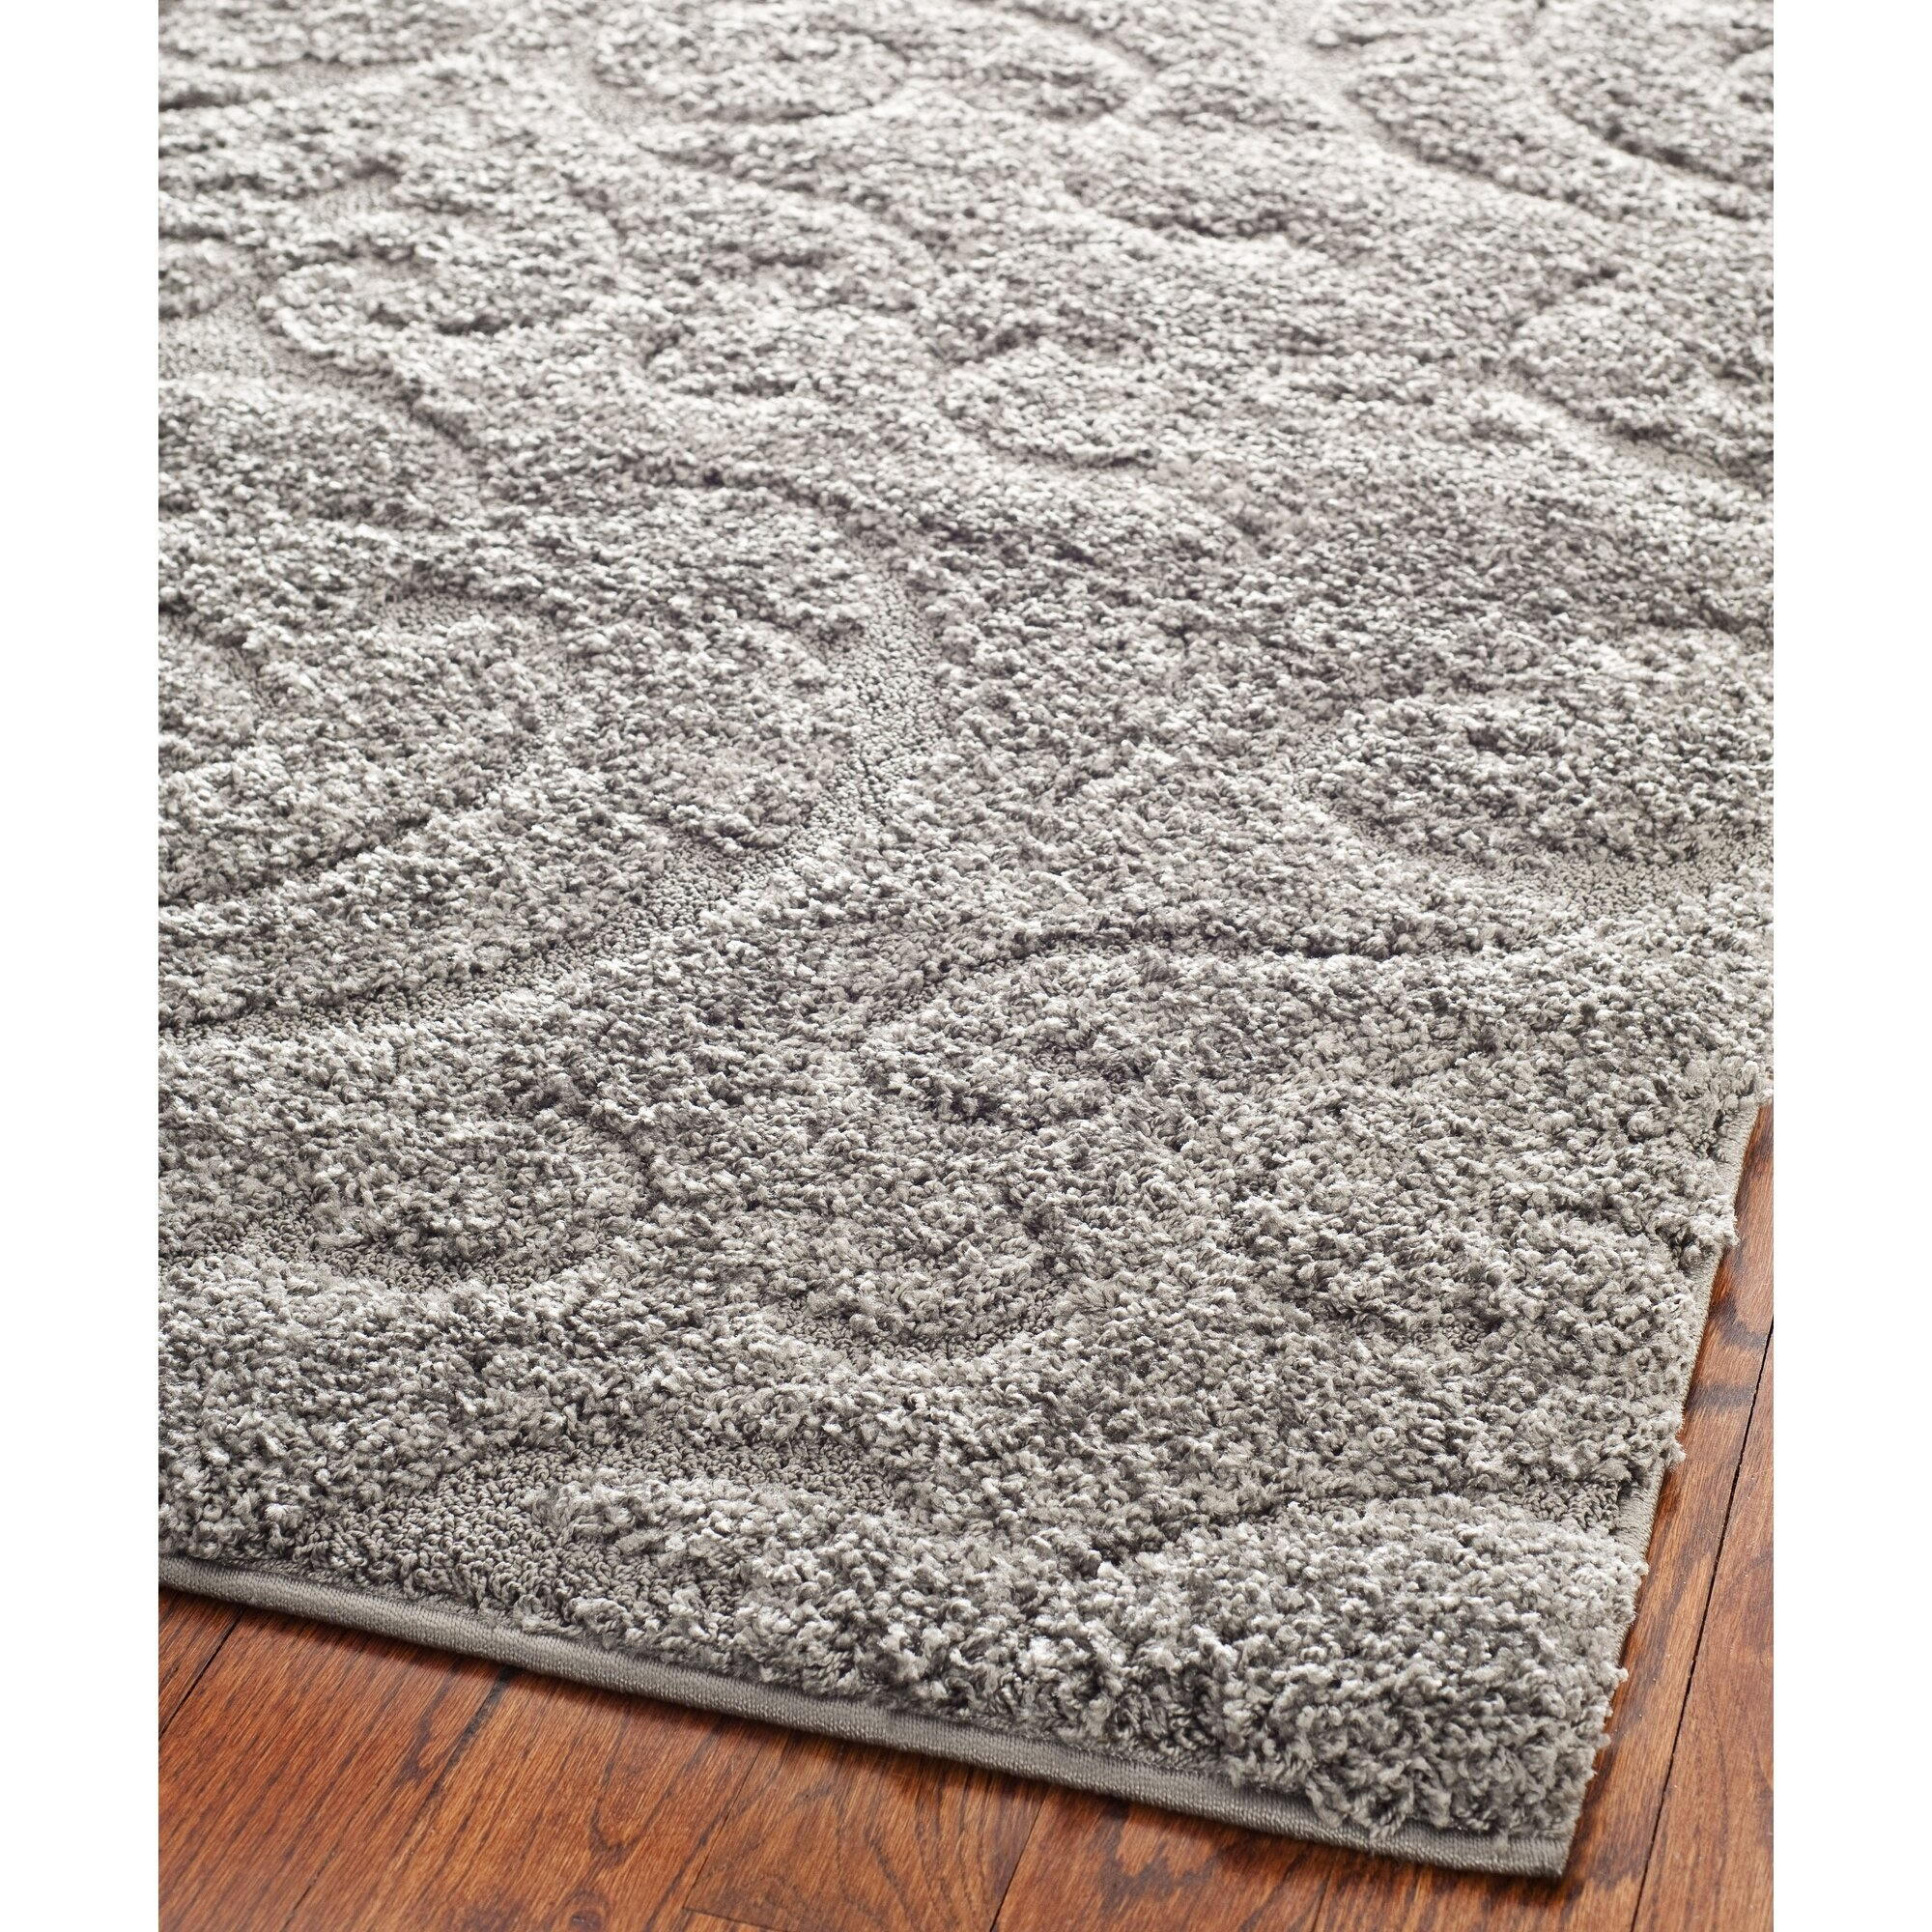 House Of Hampton Flanery Light Gray Beige Area Rug